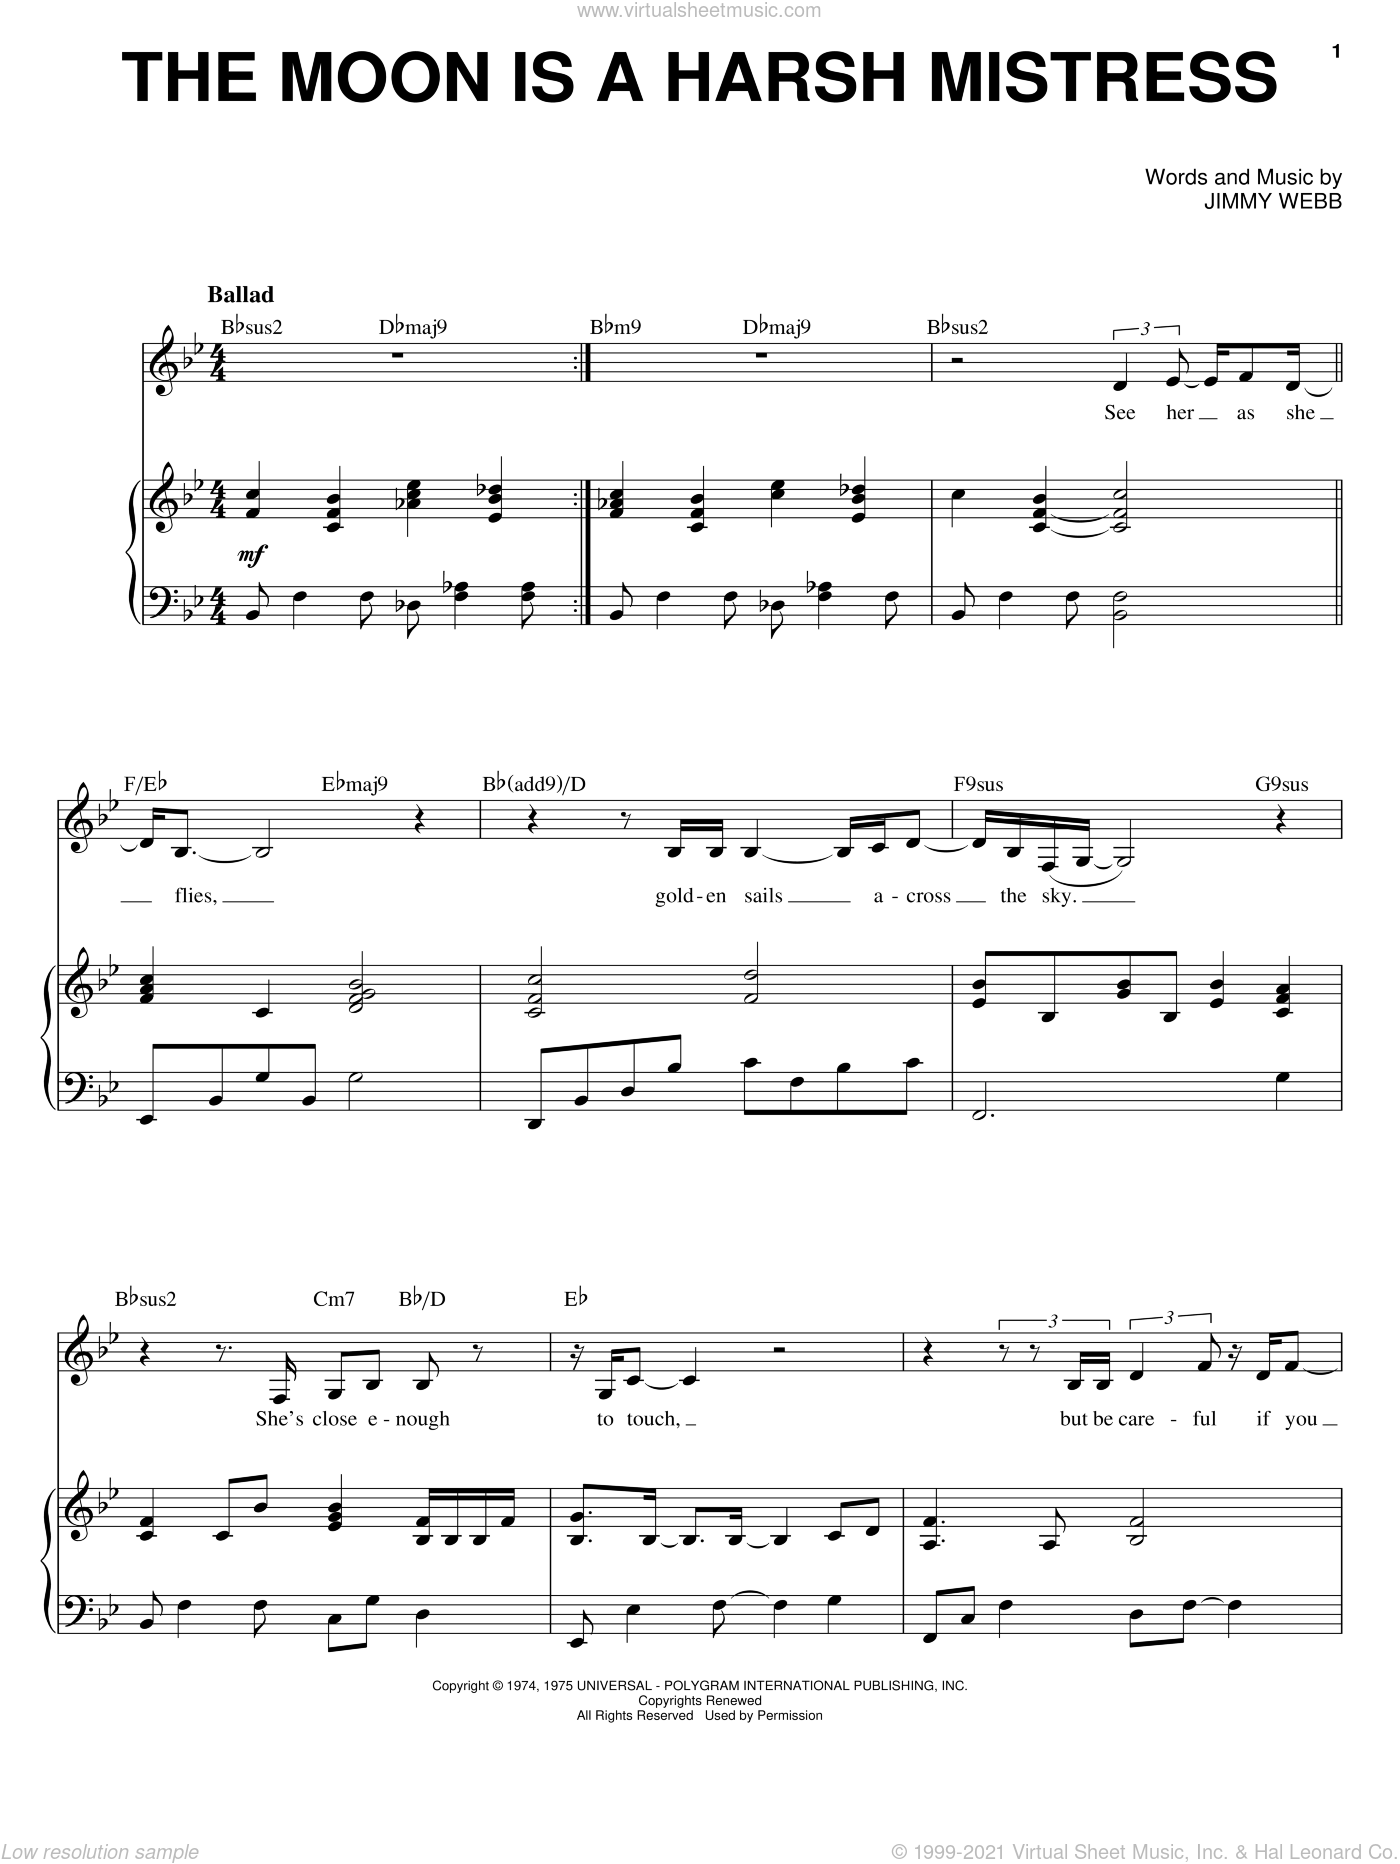 The Moon Is A Harsh Mistress sheet music for voice, piano or guitar by Karrin Allyson and Jimmy Webb, intermediate skill level